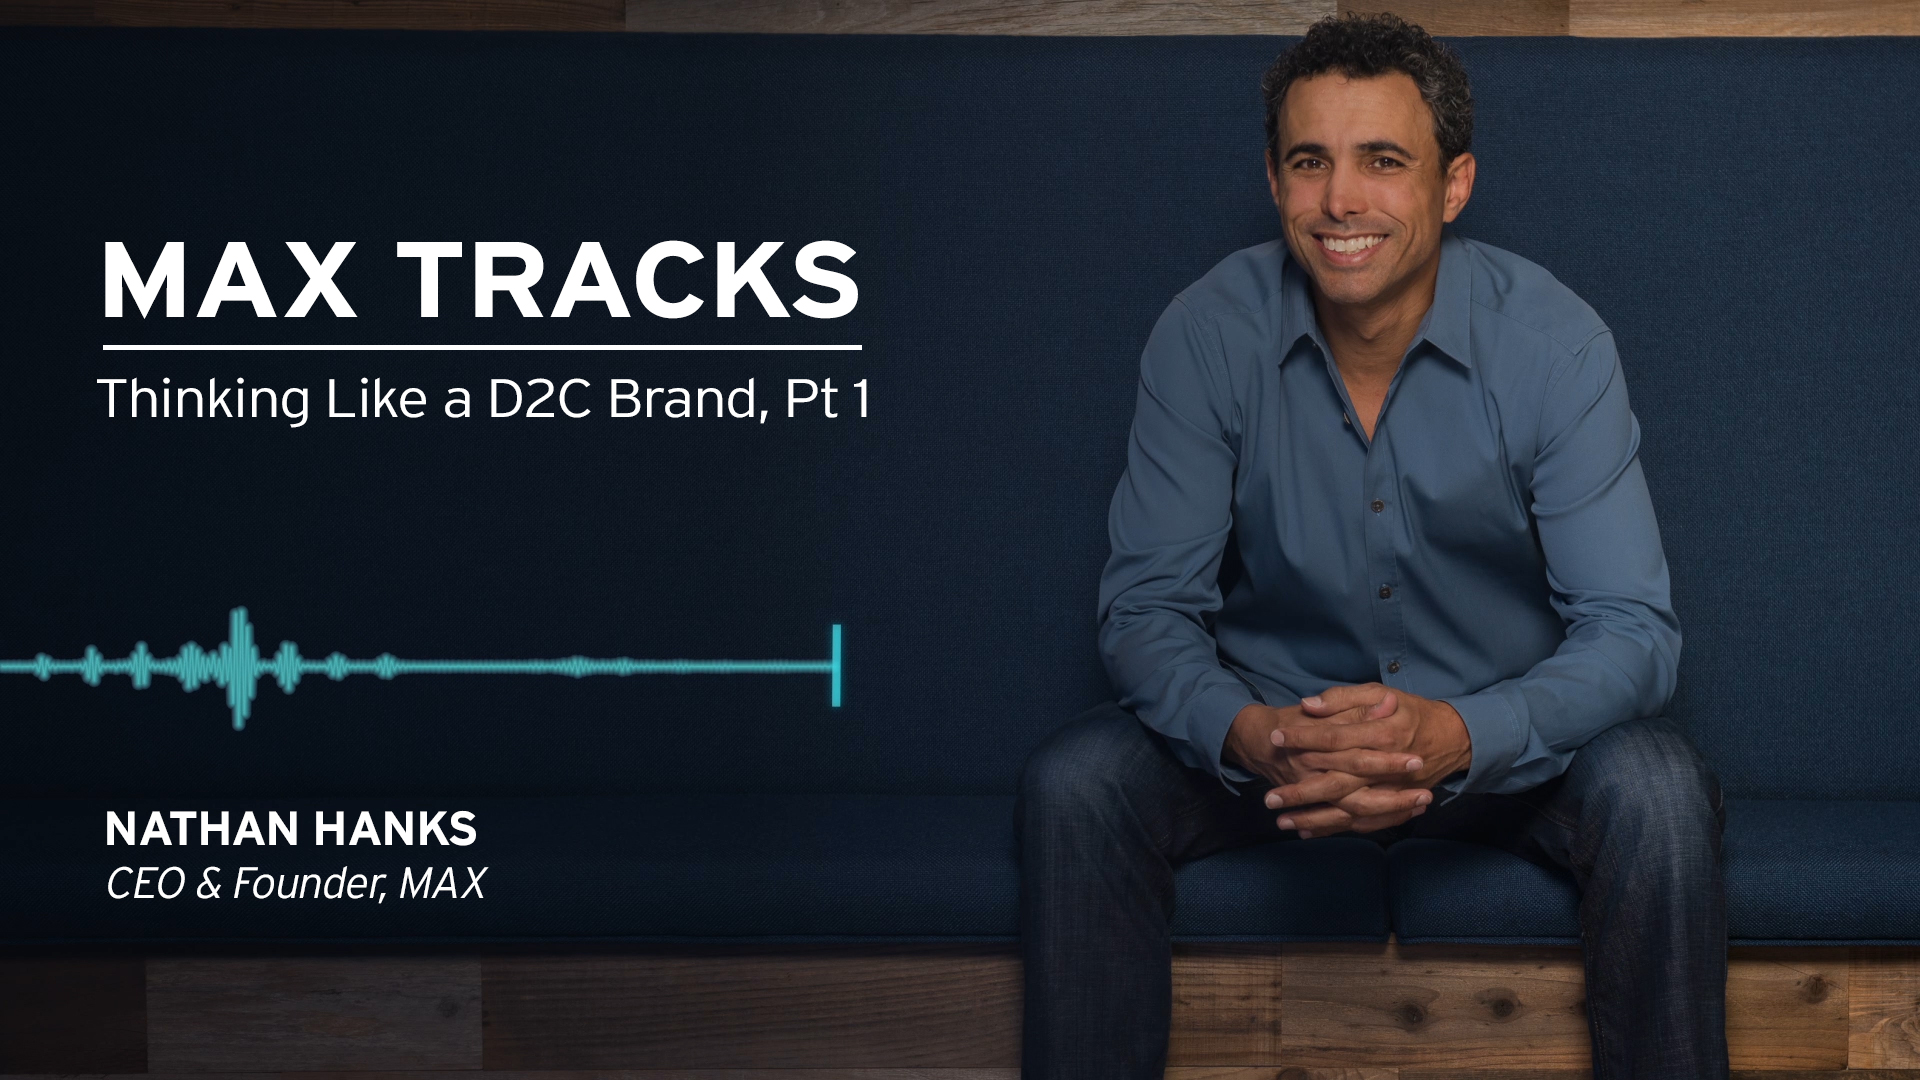 MAX Tracks: Thinking Like a D2C Brand, Part 1